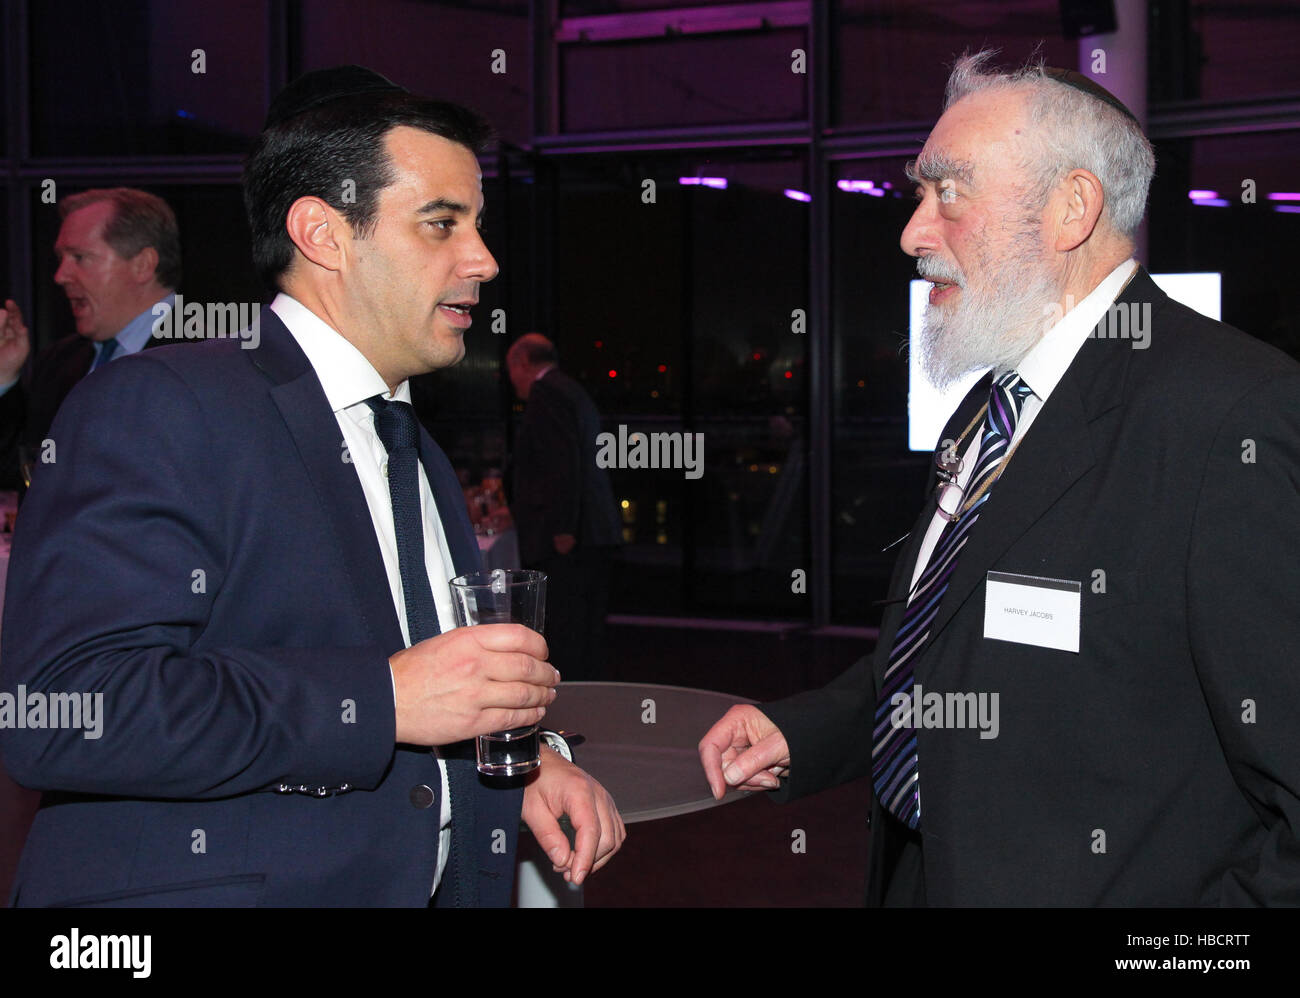 London, UK. 6th December, 2016. The Mayor of London, Sadiq Khan attends Chanukah Reception in City Hall hosted by - Stock Image